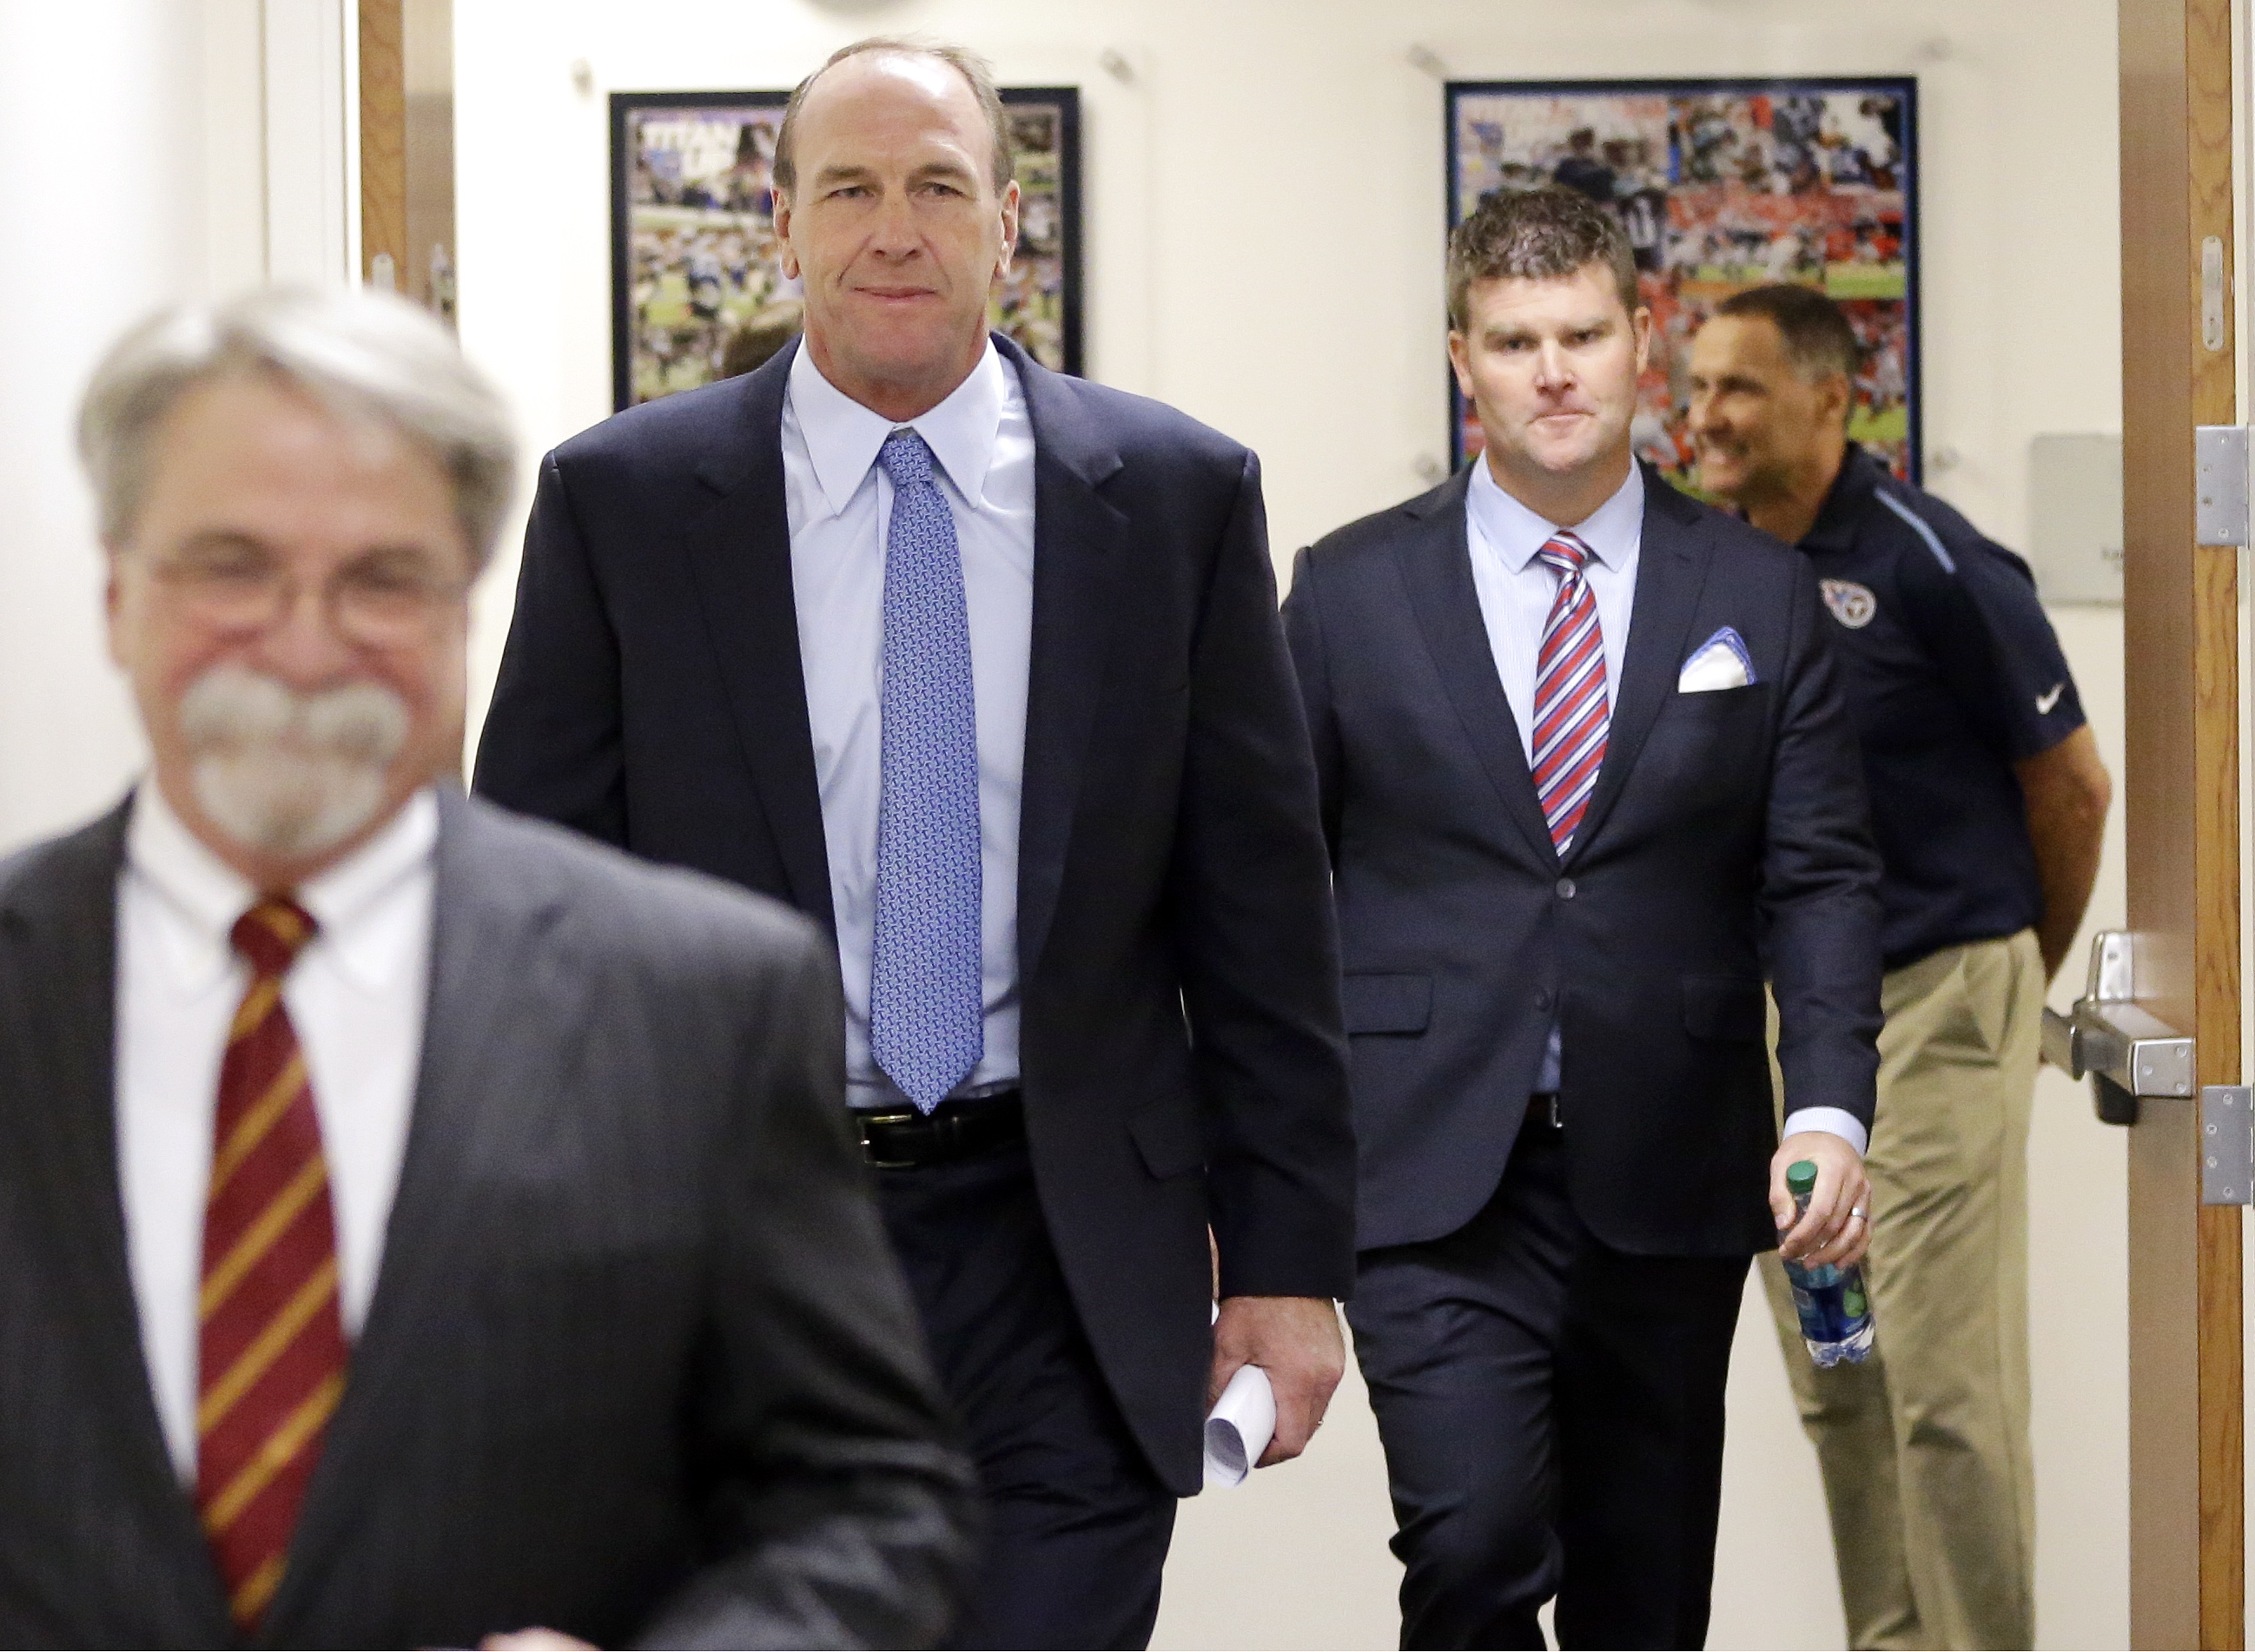 Recently hired Tennessee Titans head coach Mike Mularkey, second from left, and general manager Jon Robinson, second from right, arrive for a news conference Monday, Jan. 18, 2016, in Nashville, Tenn. Mularkey was previously the team's interim head coach